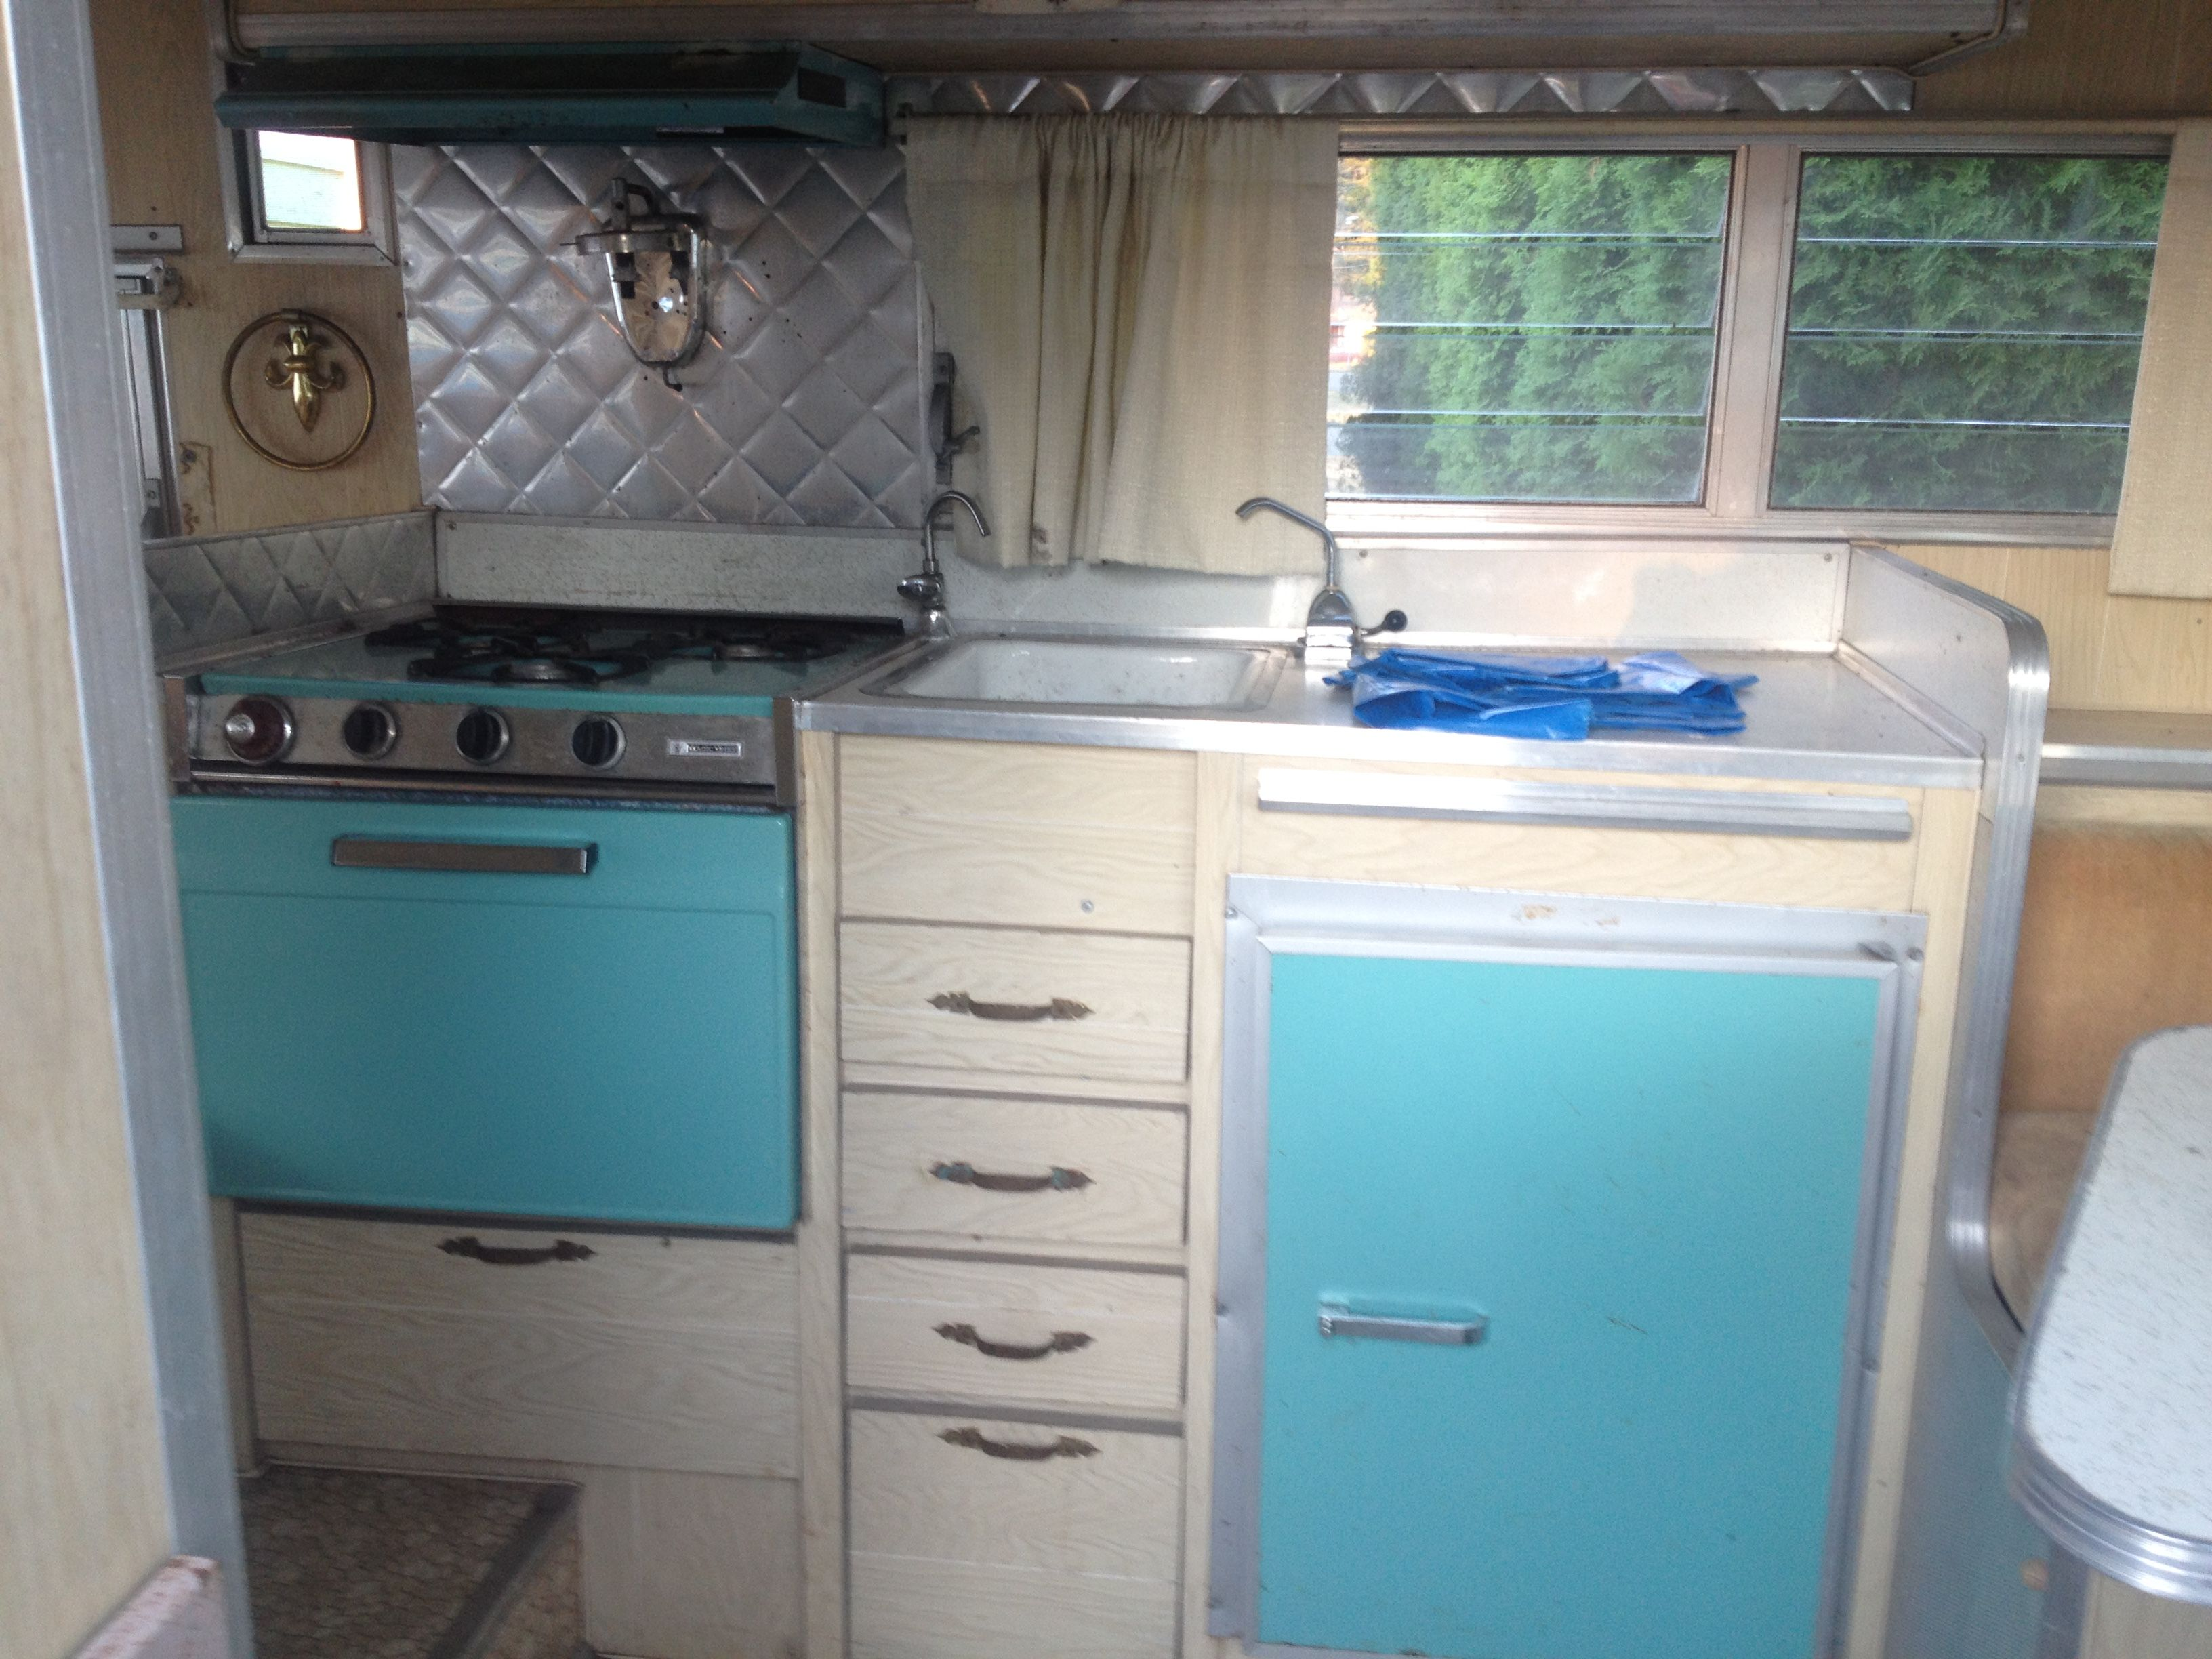 Fell in love with the turquoise appliances | Vintage trailers ...